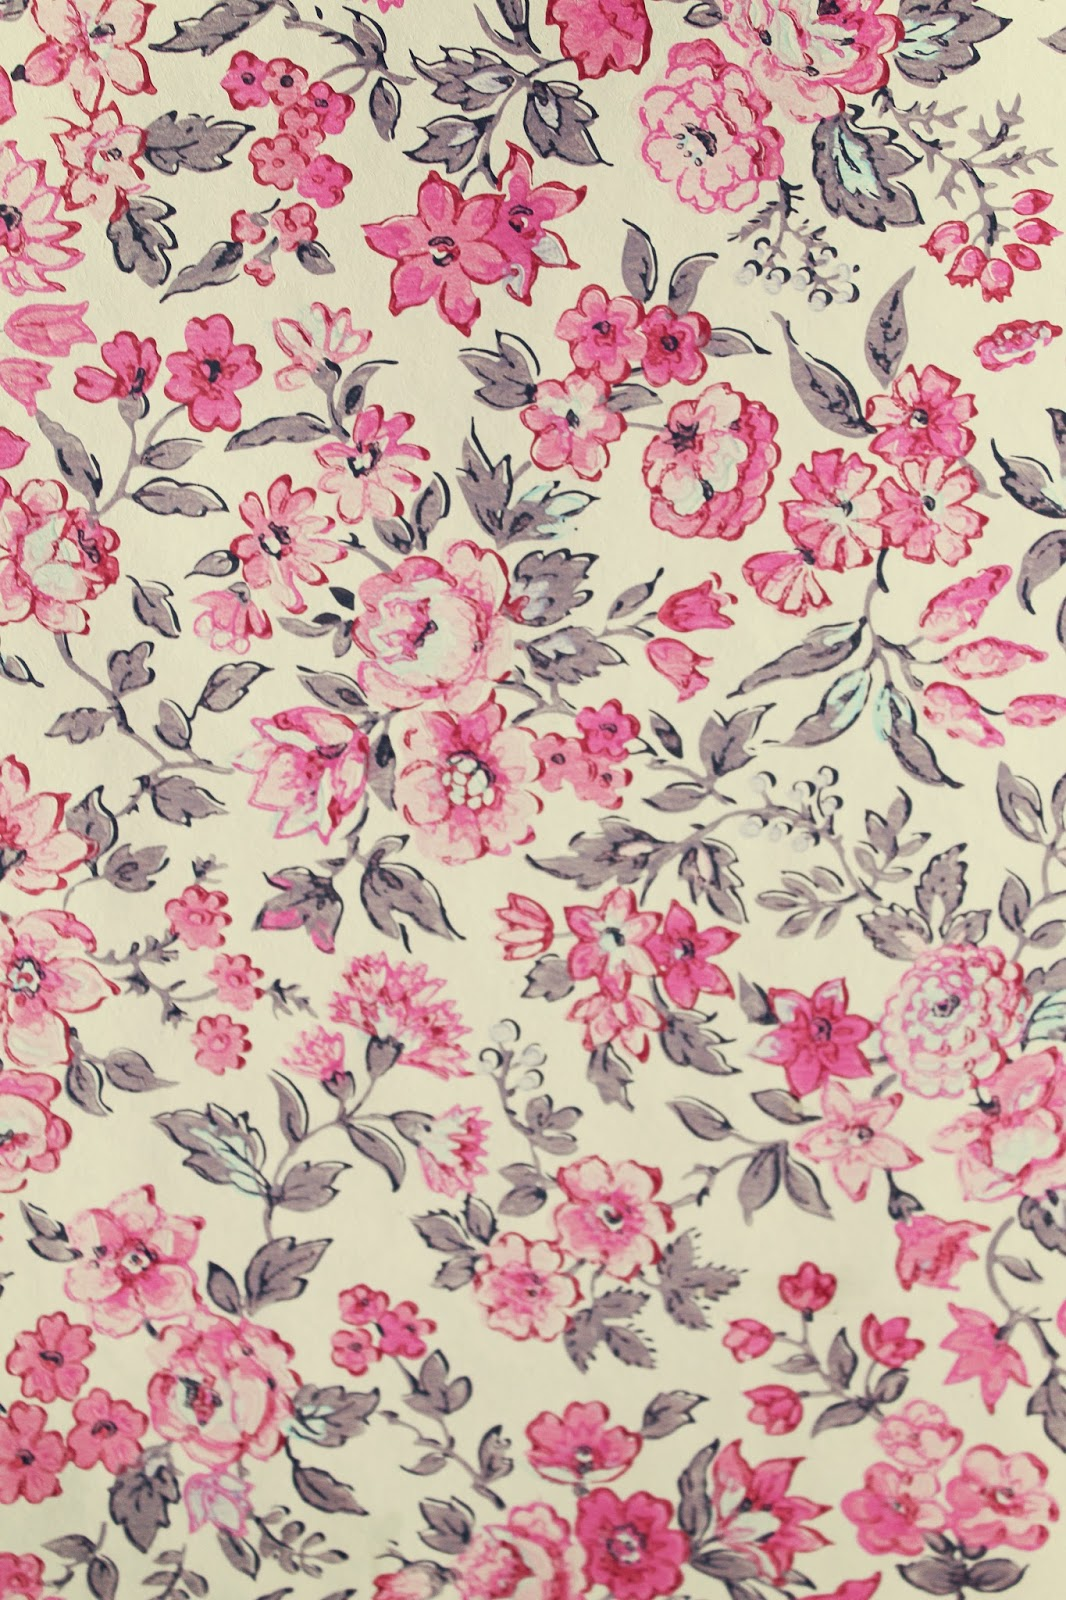 The Villa on Mou...Vintage Floral Background Pattern Tumblr